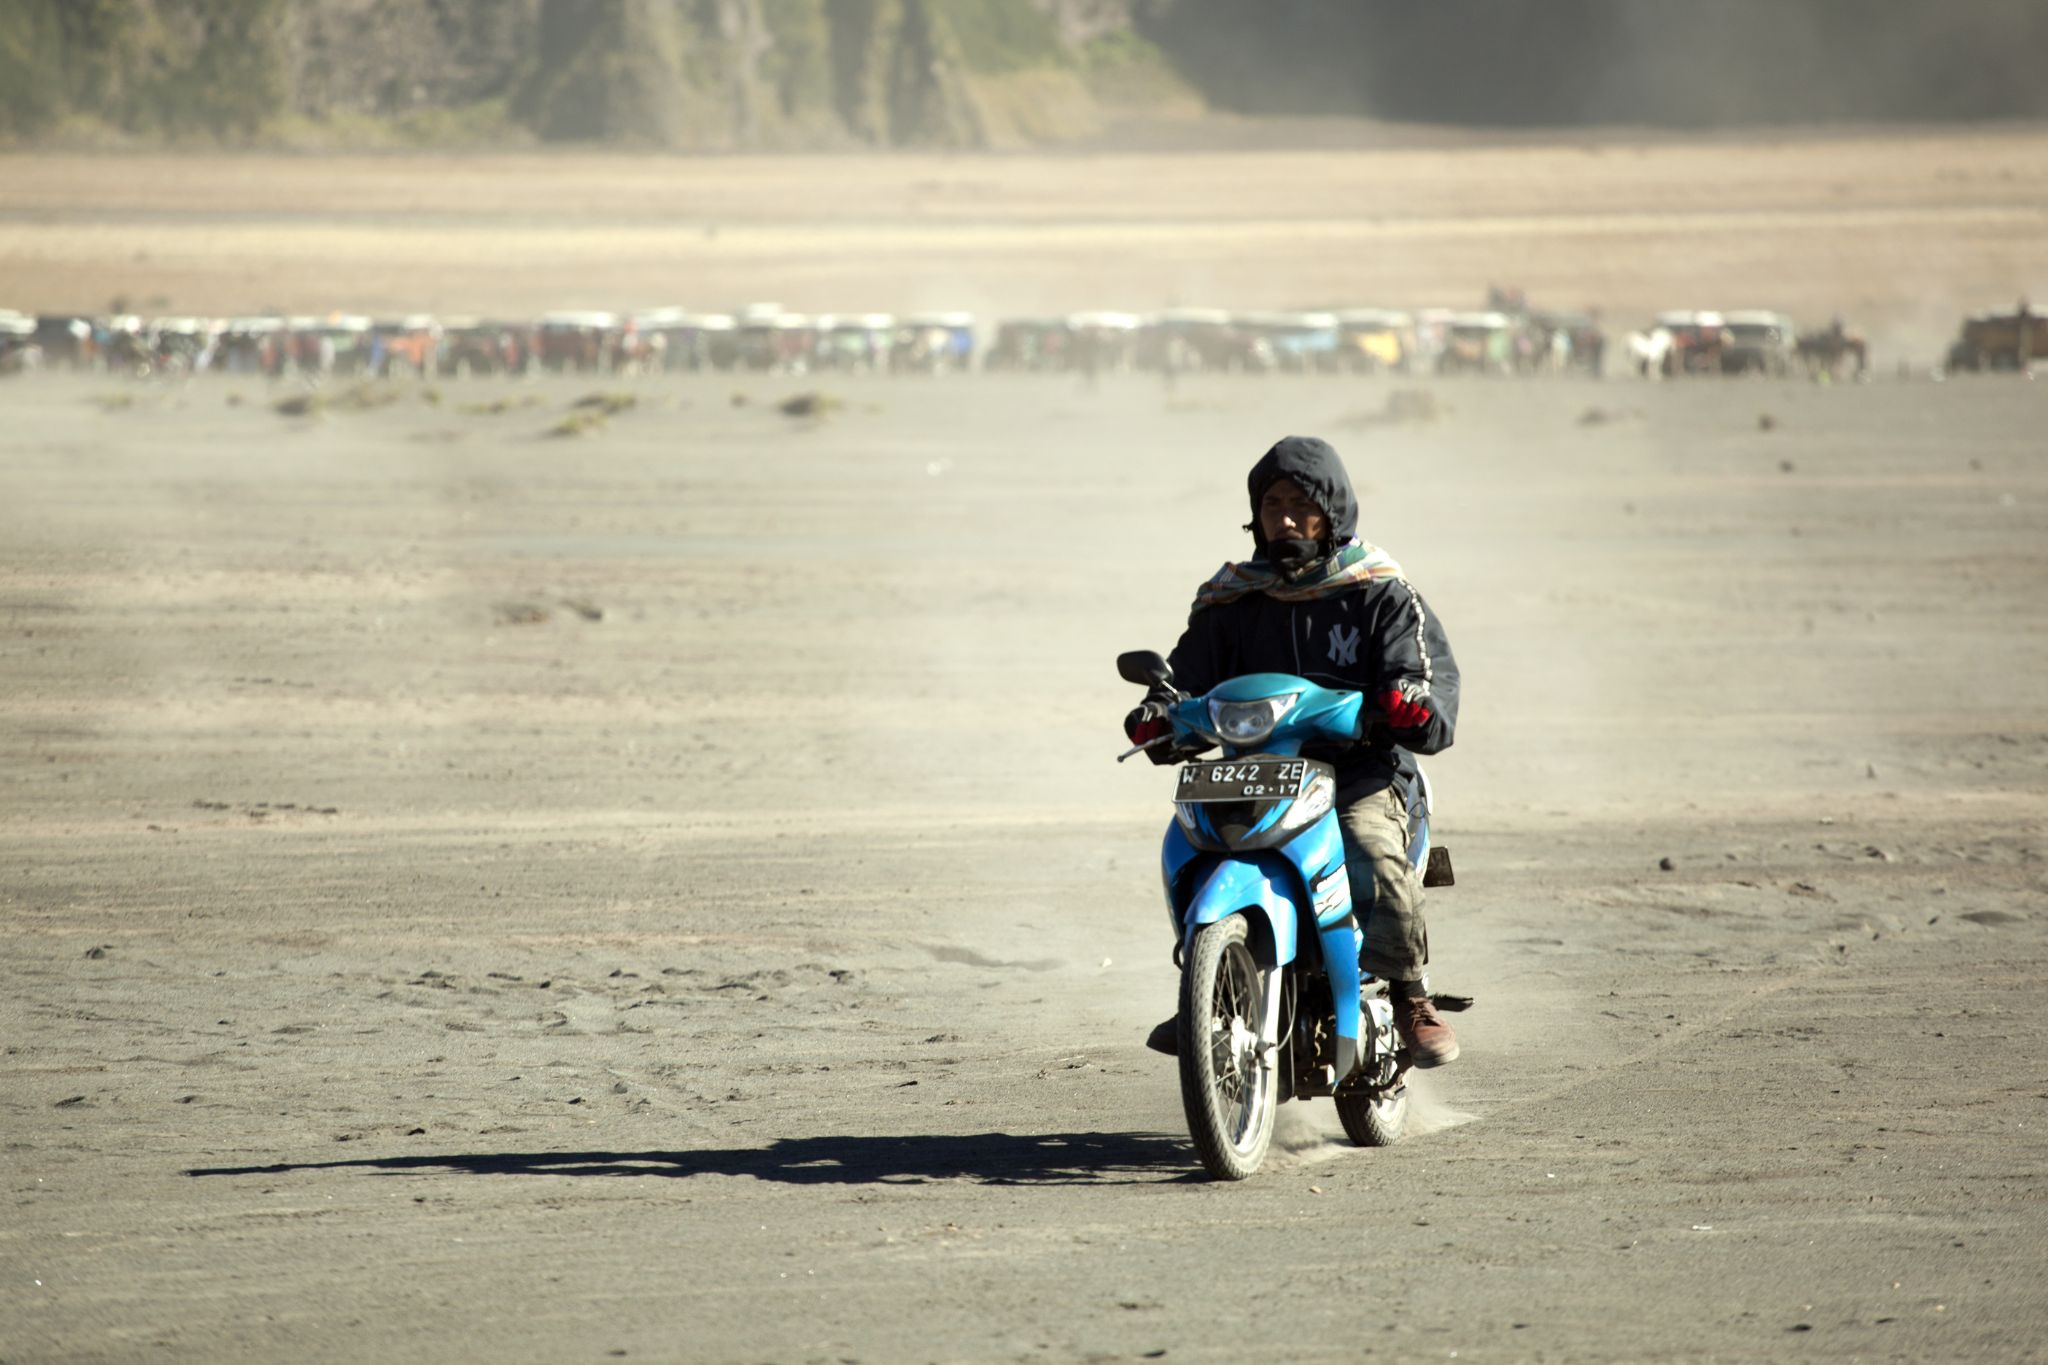 motorcycles in Mount Bromo by ismarley.marley